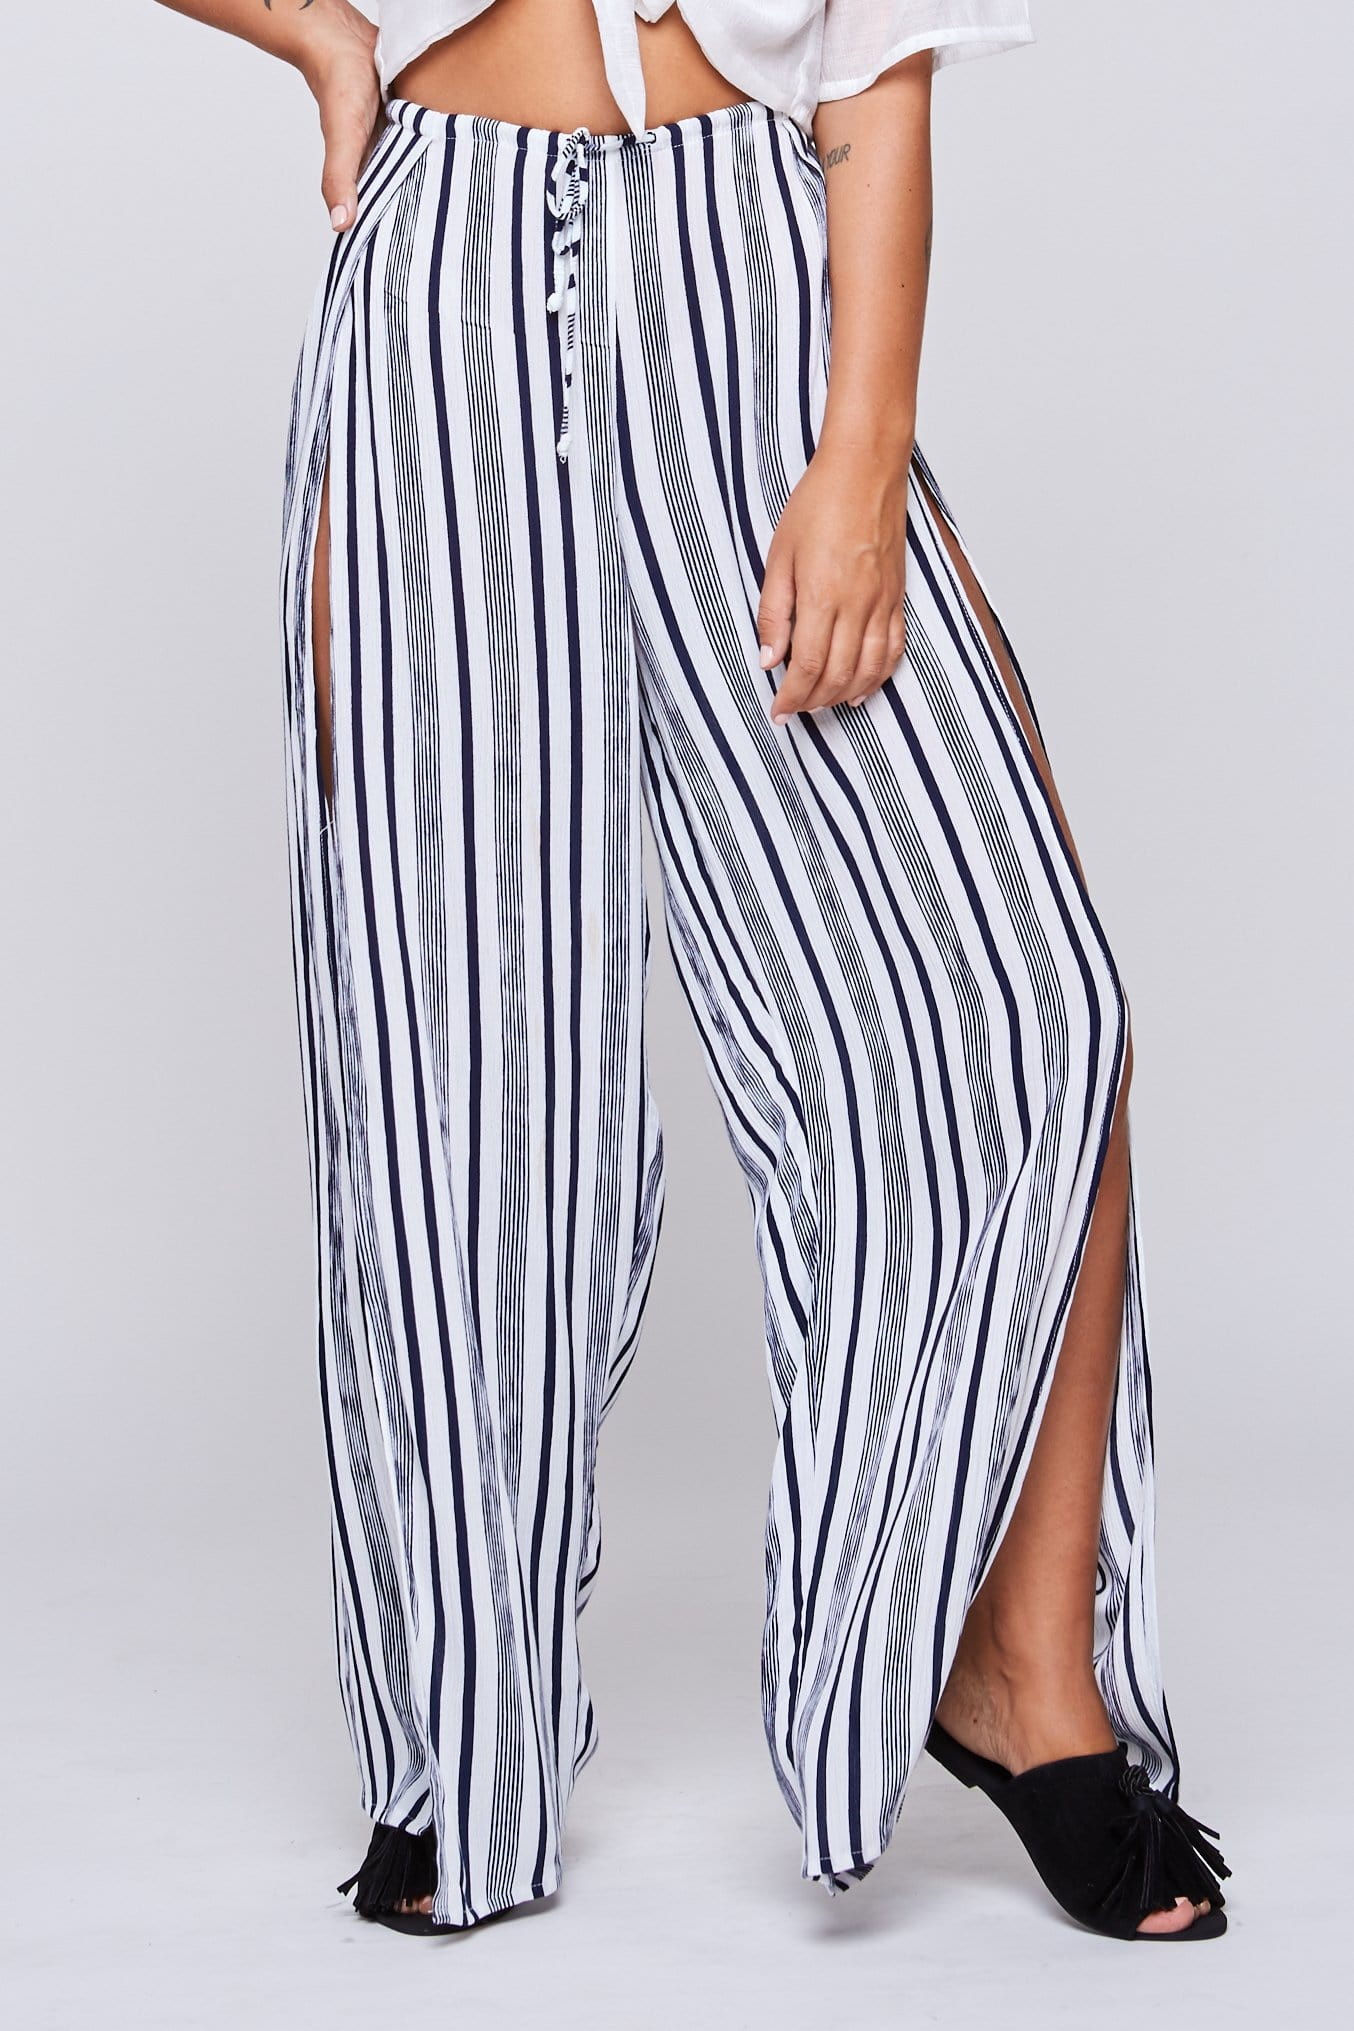 Riley Long Pants - Woman Pants - LOST IN PARADISE